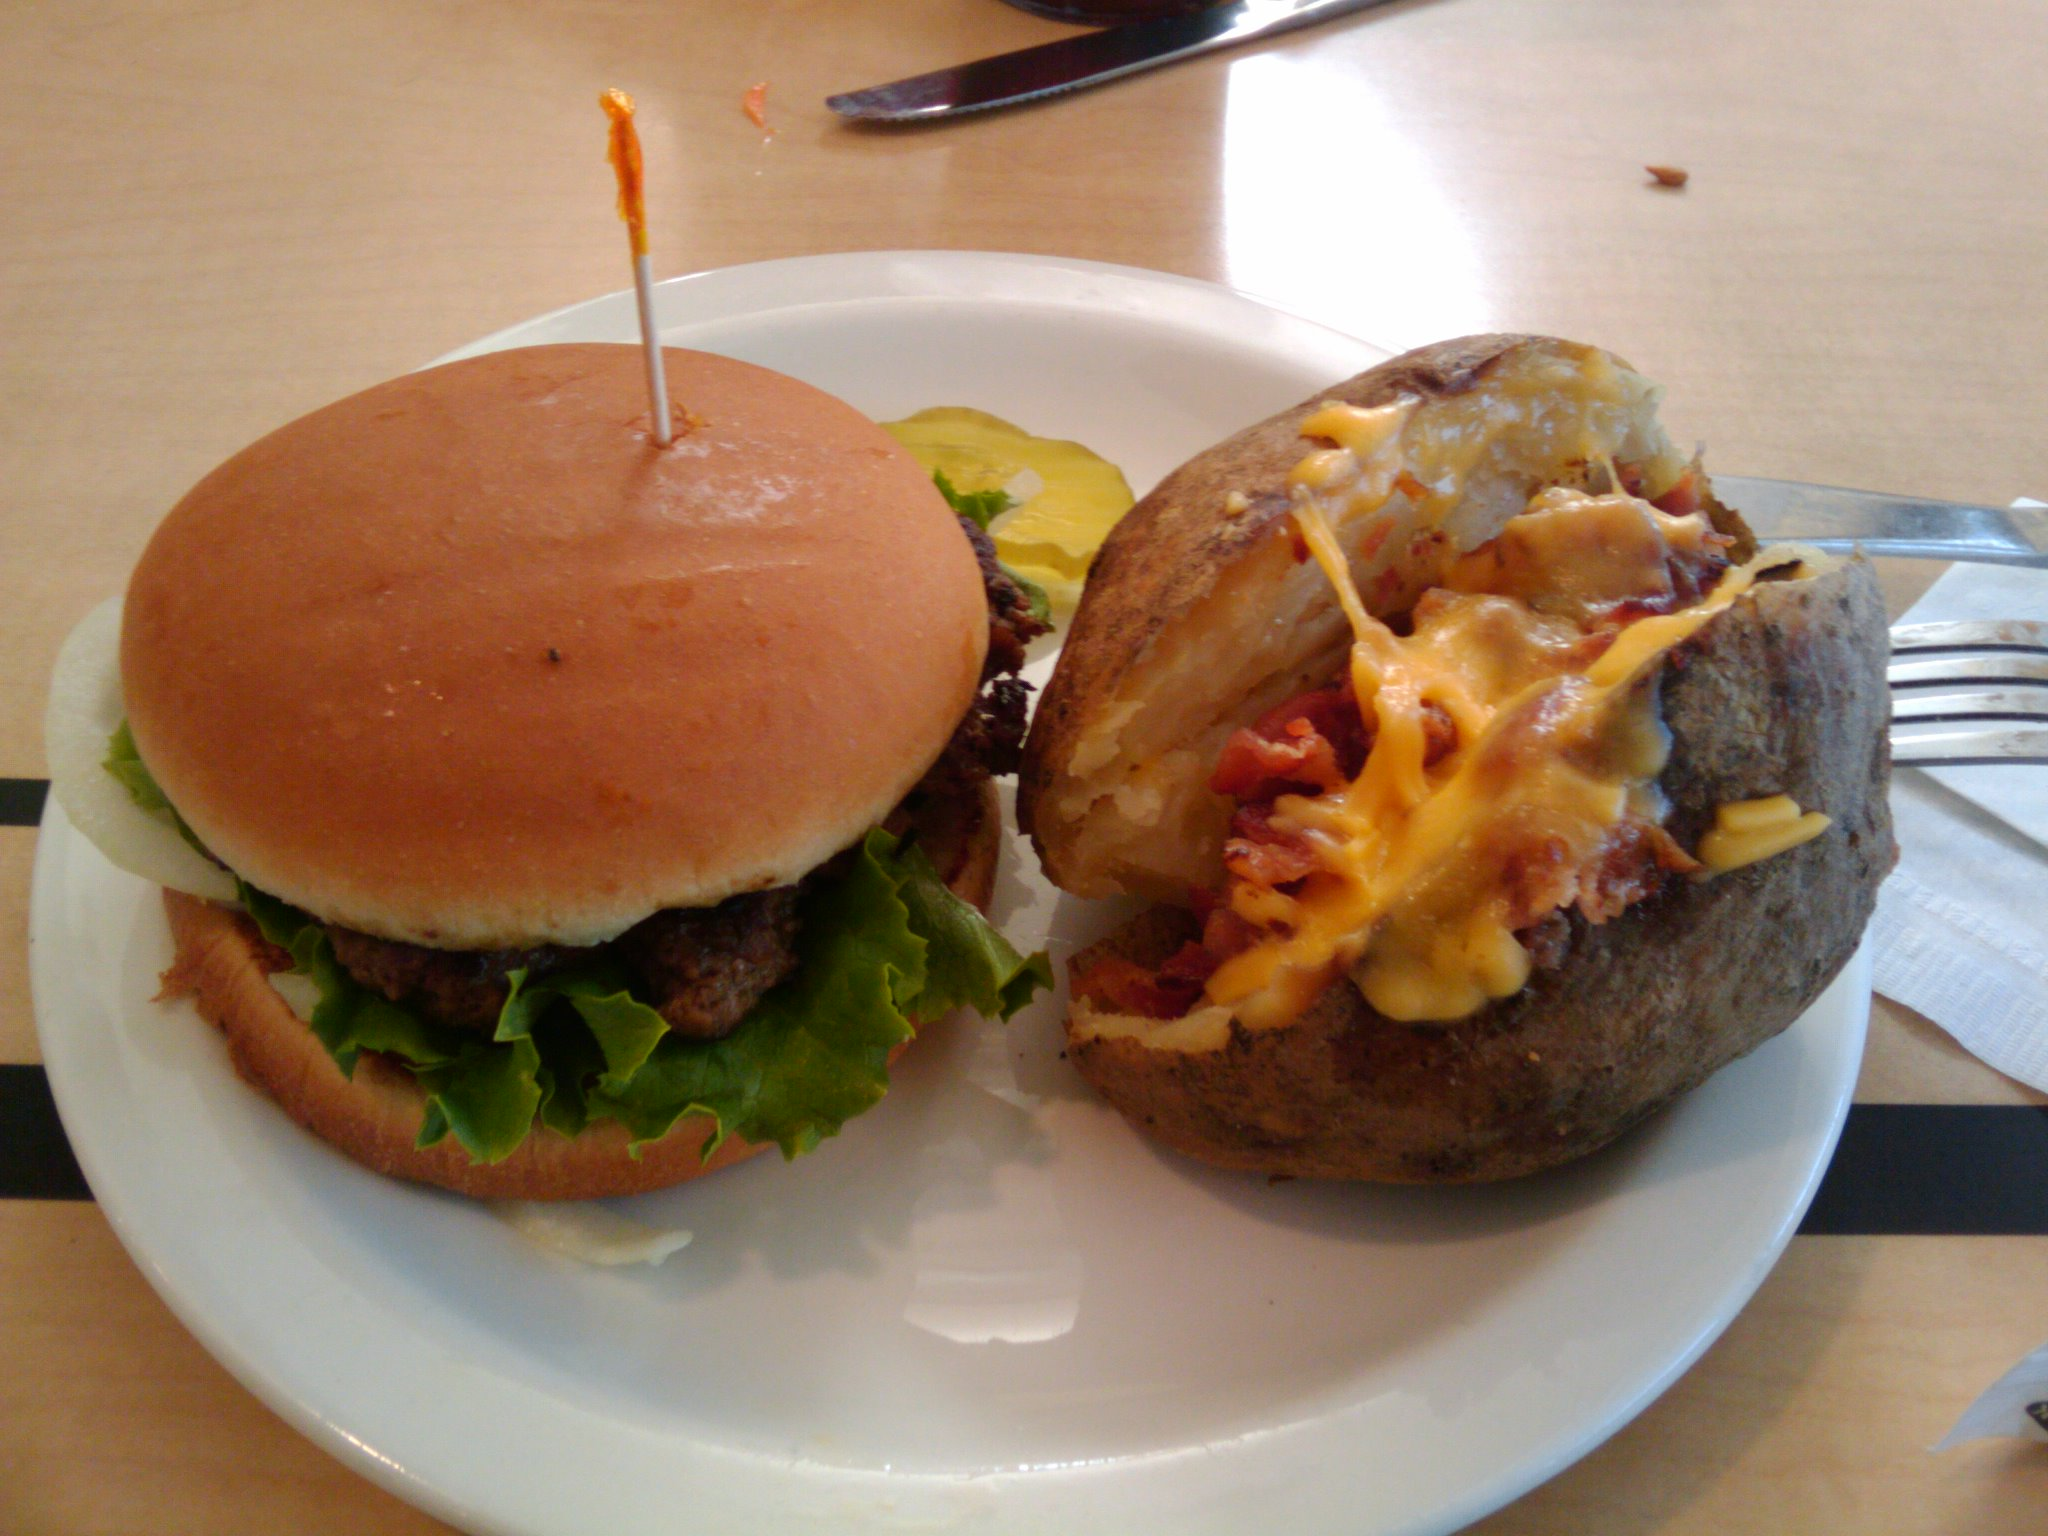 Atlanta, ga :: Burger and a loaded baked potato...from chick fill a